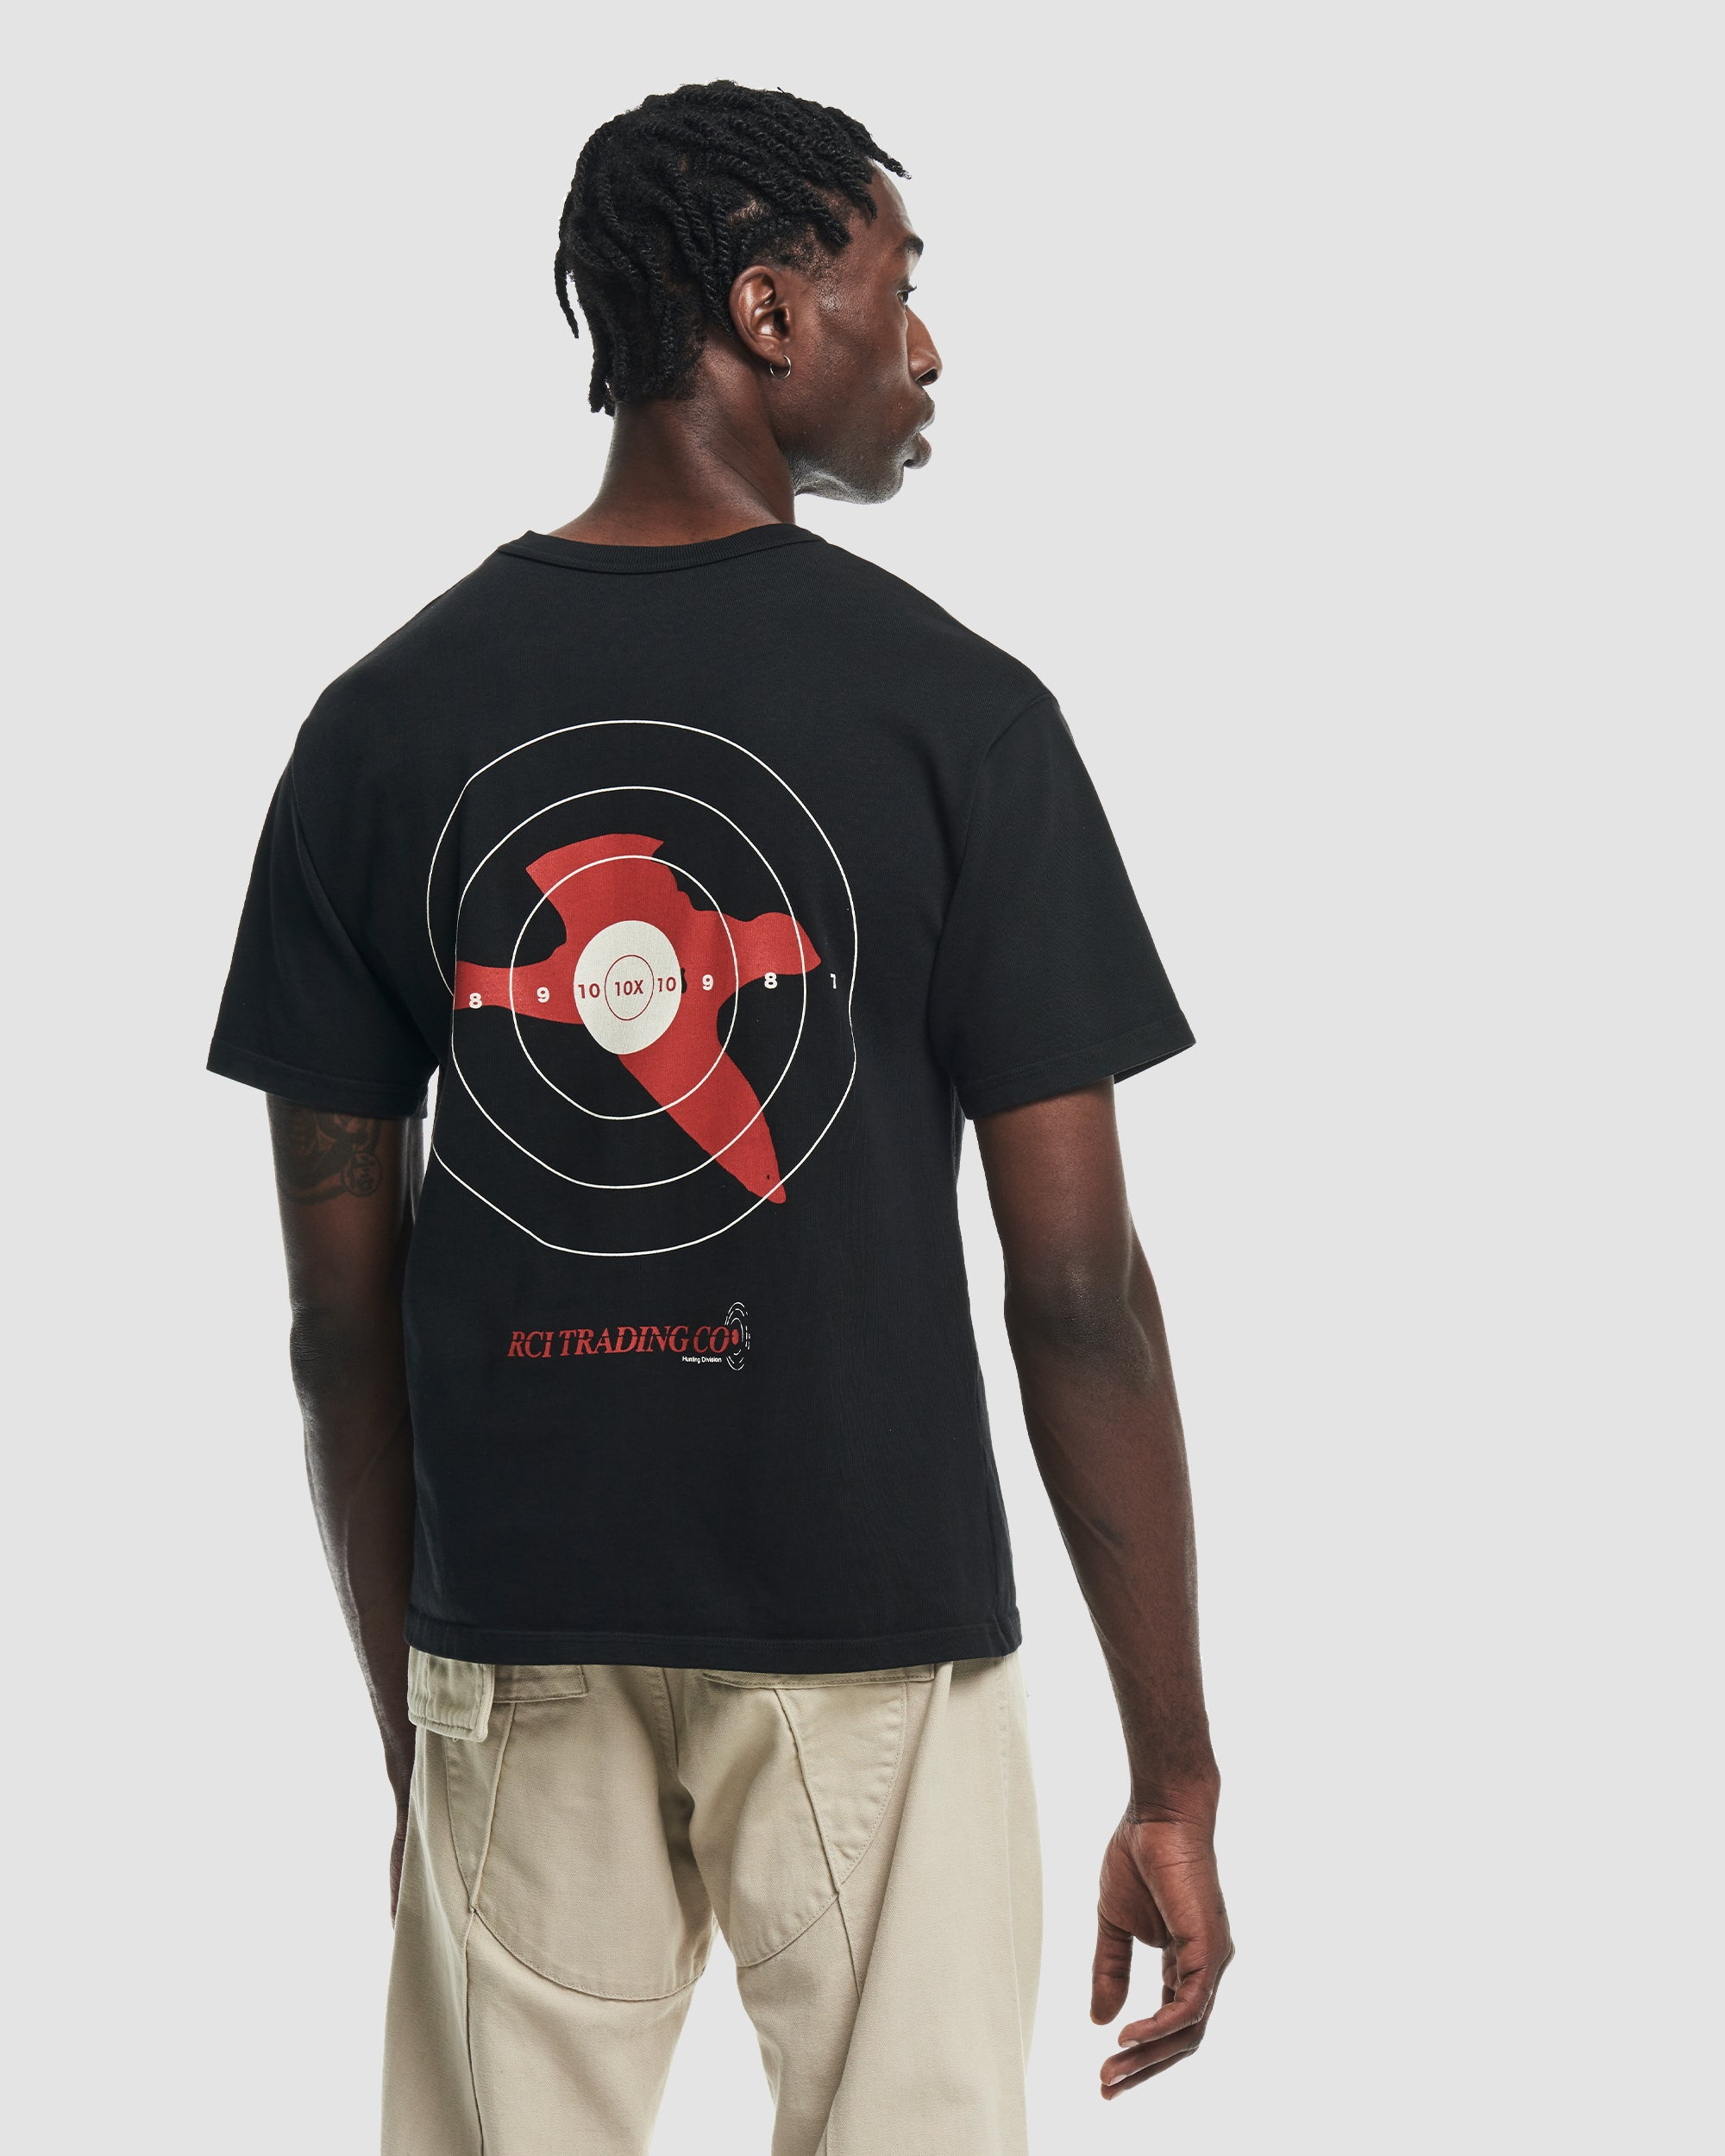 Target Shooting Tee Shirt in Black